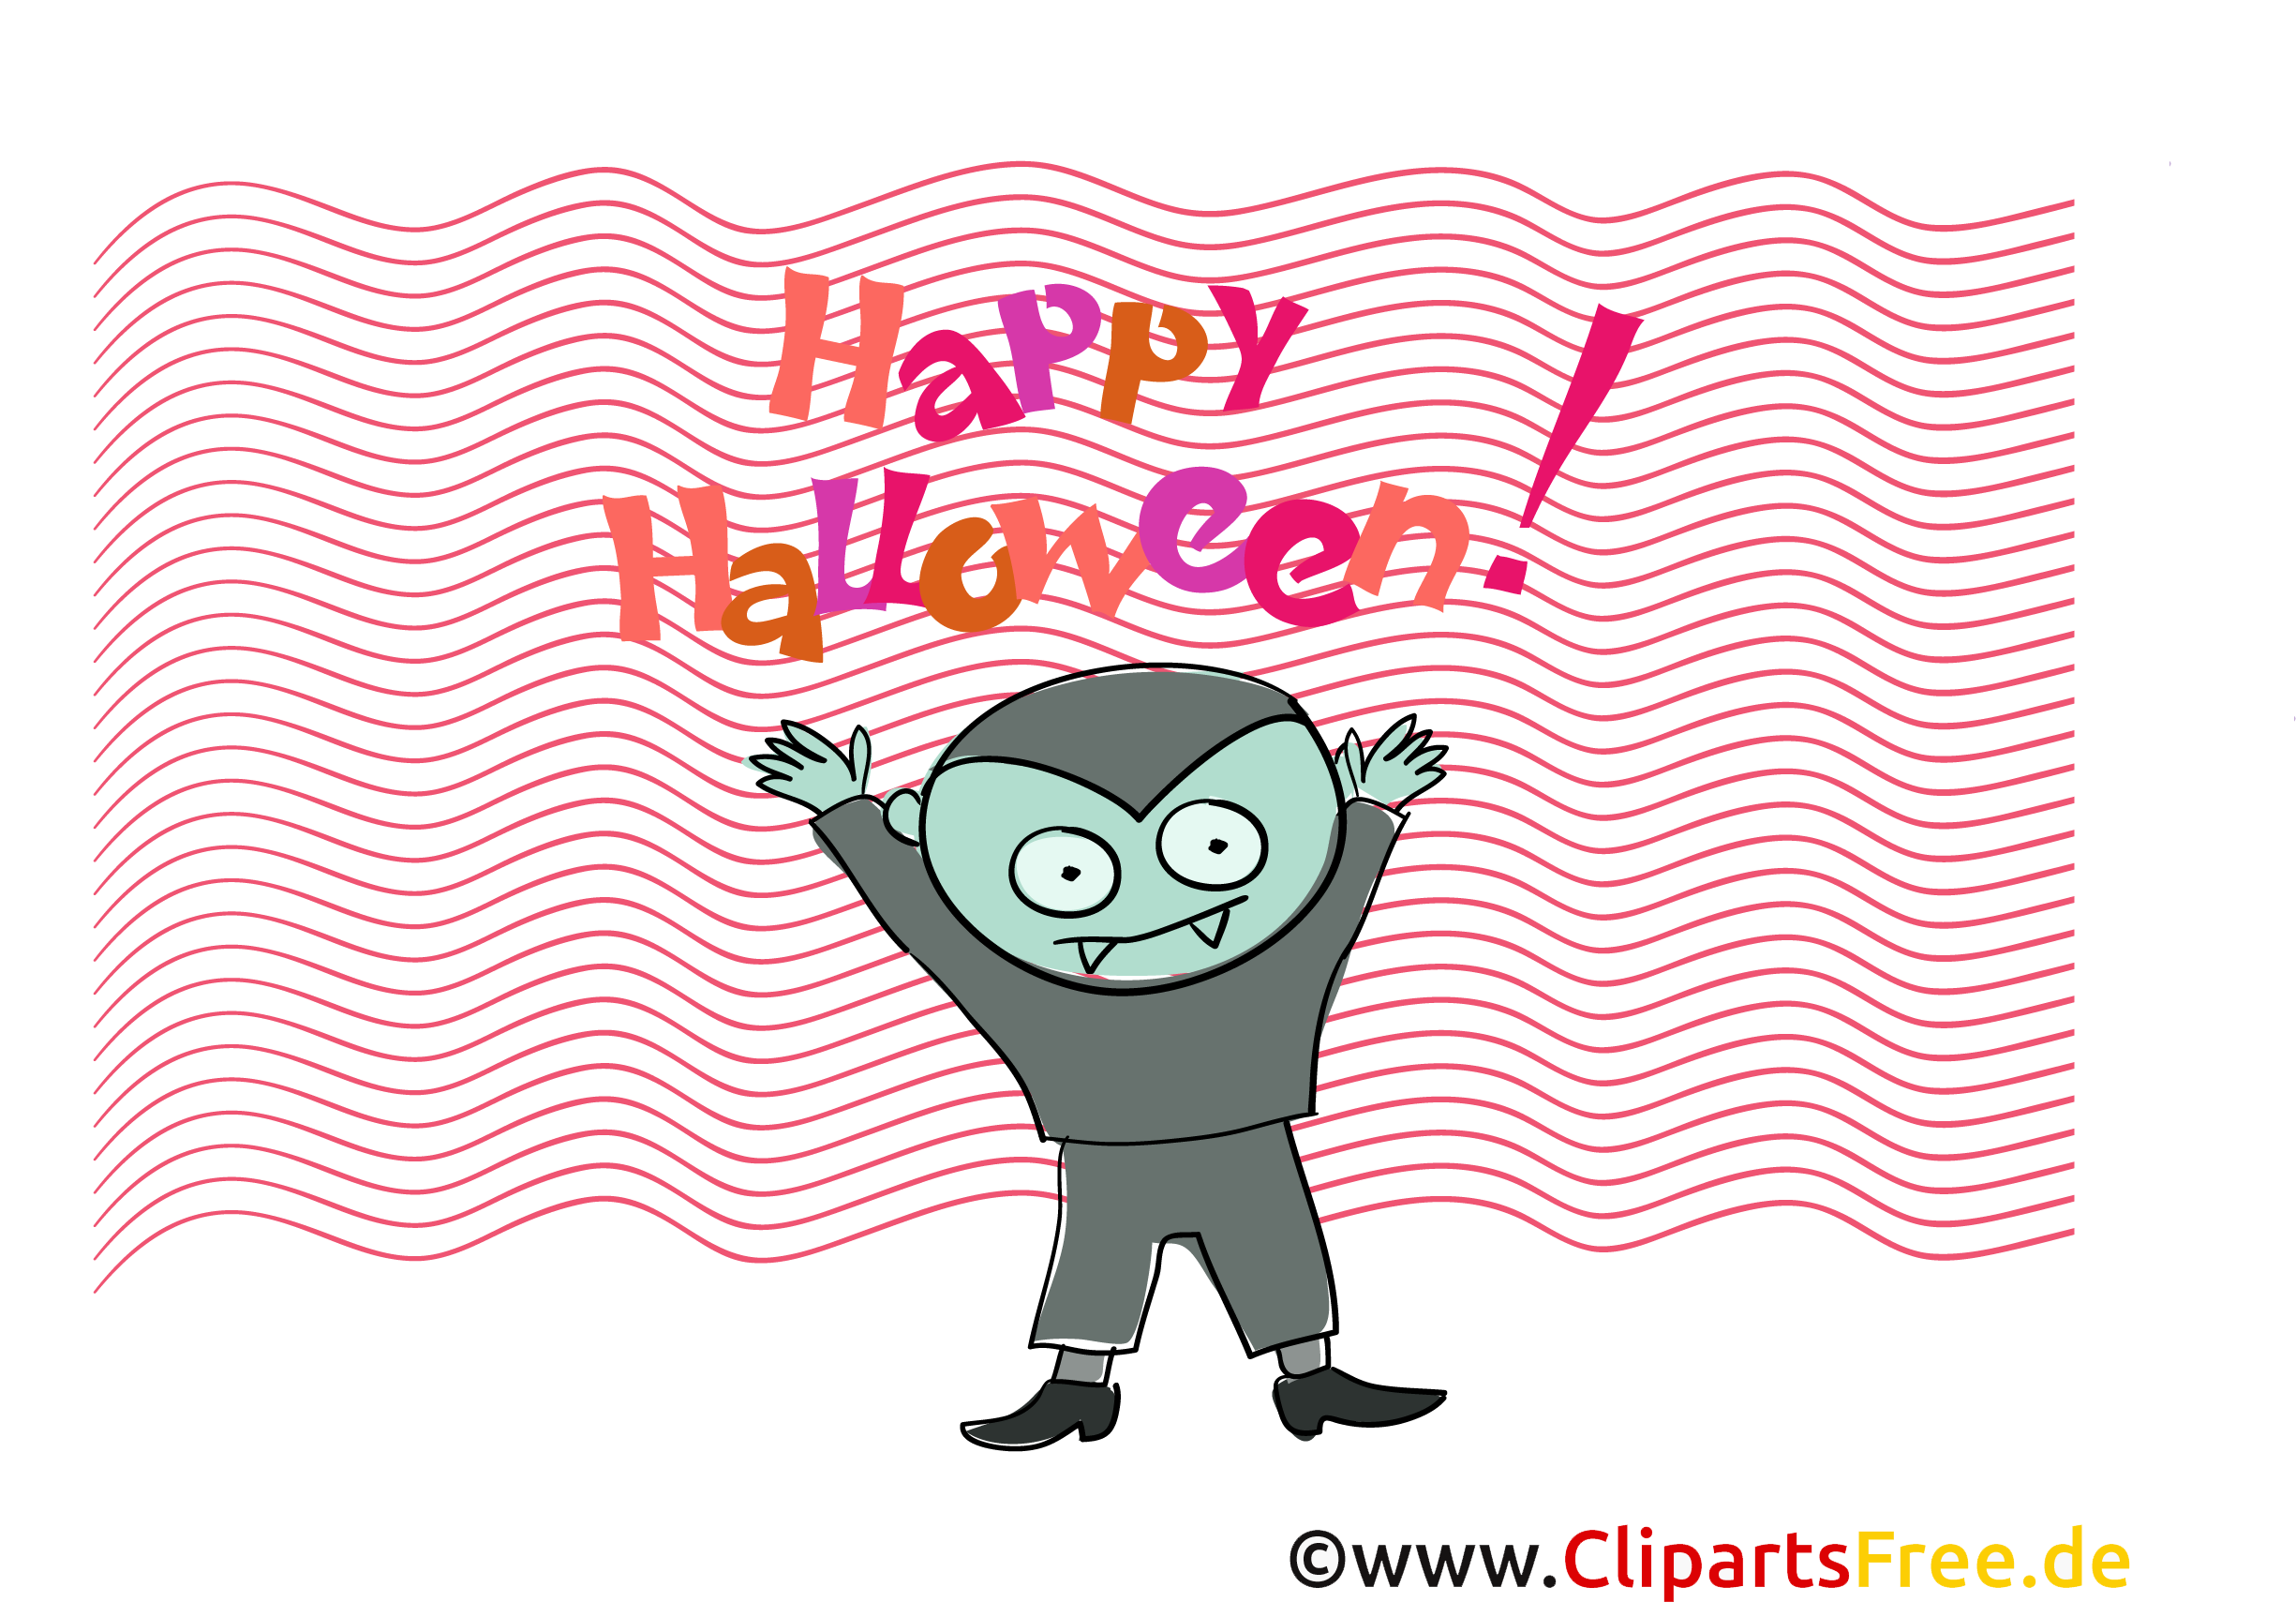 Vampir Clipart, Bild, Cartoon zu Halloween